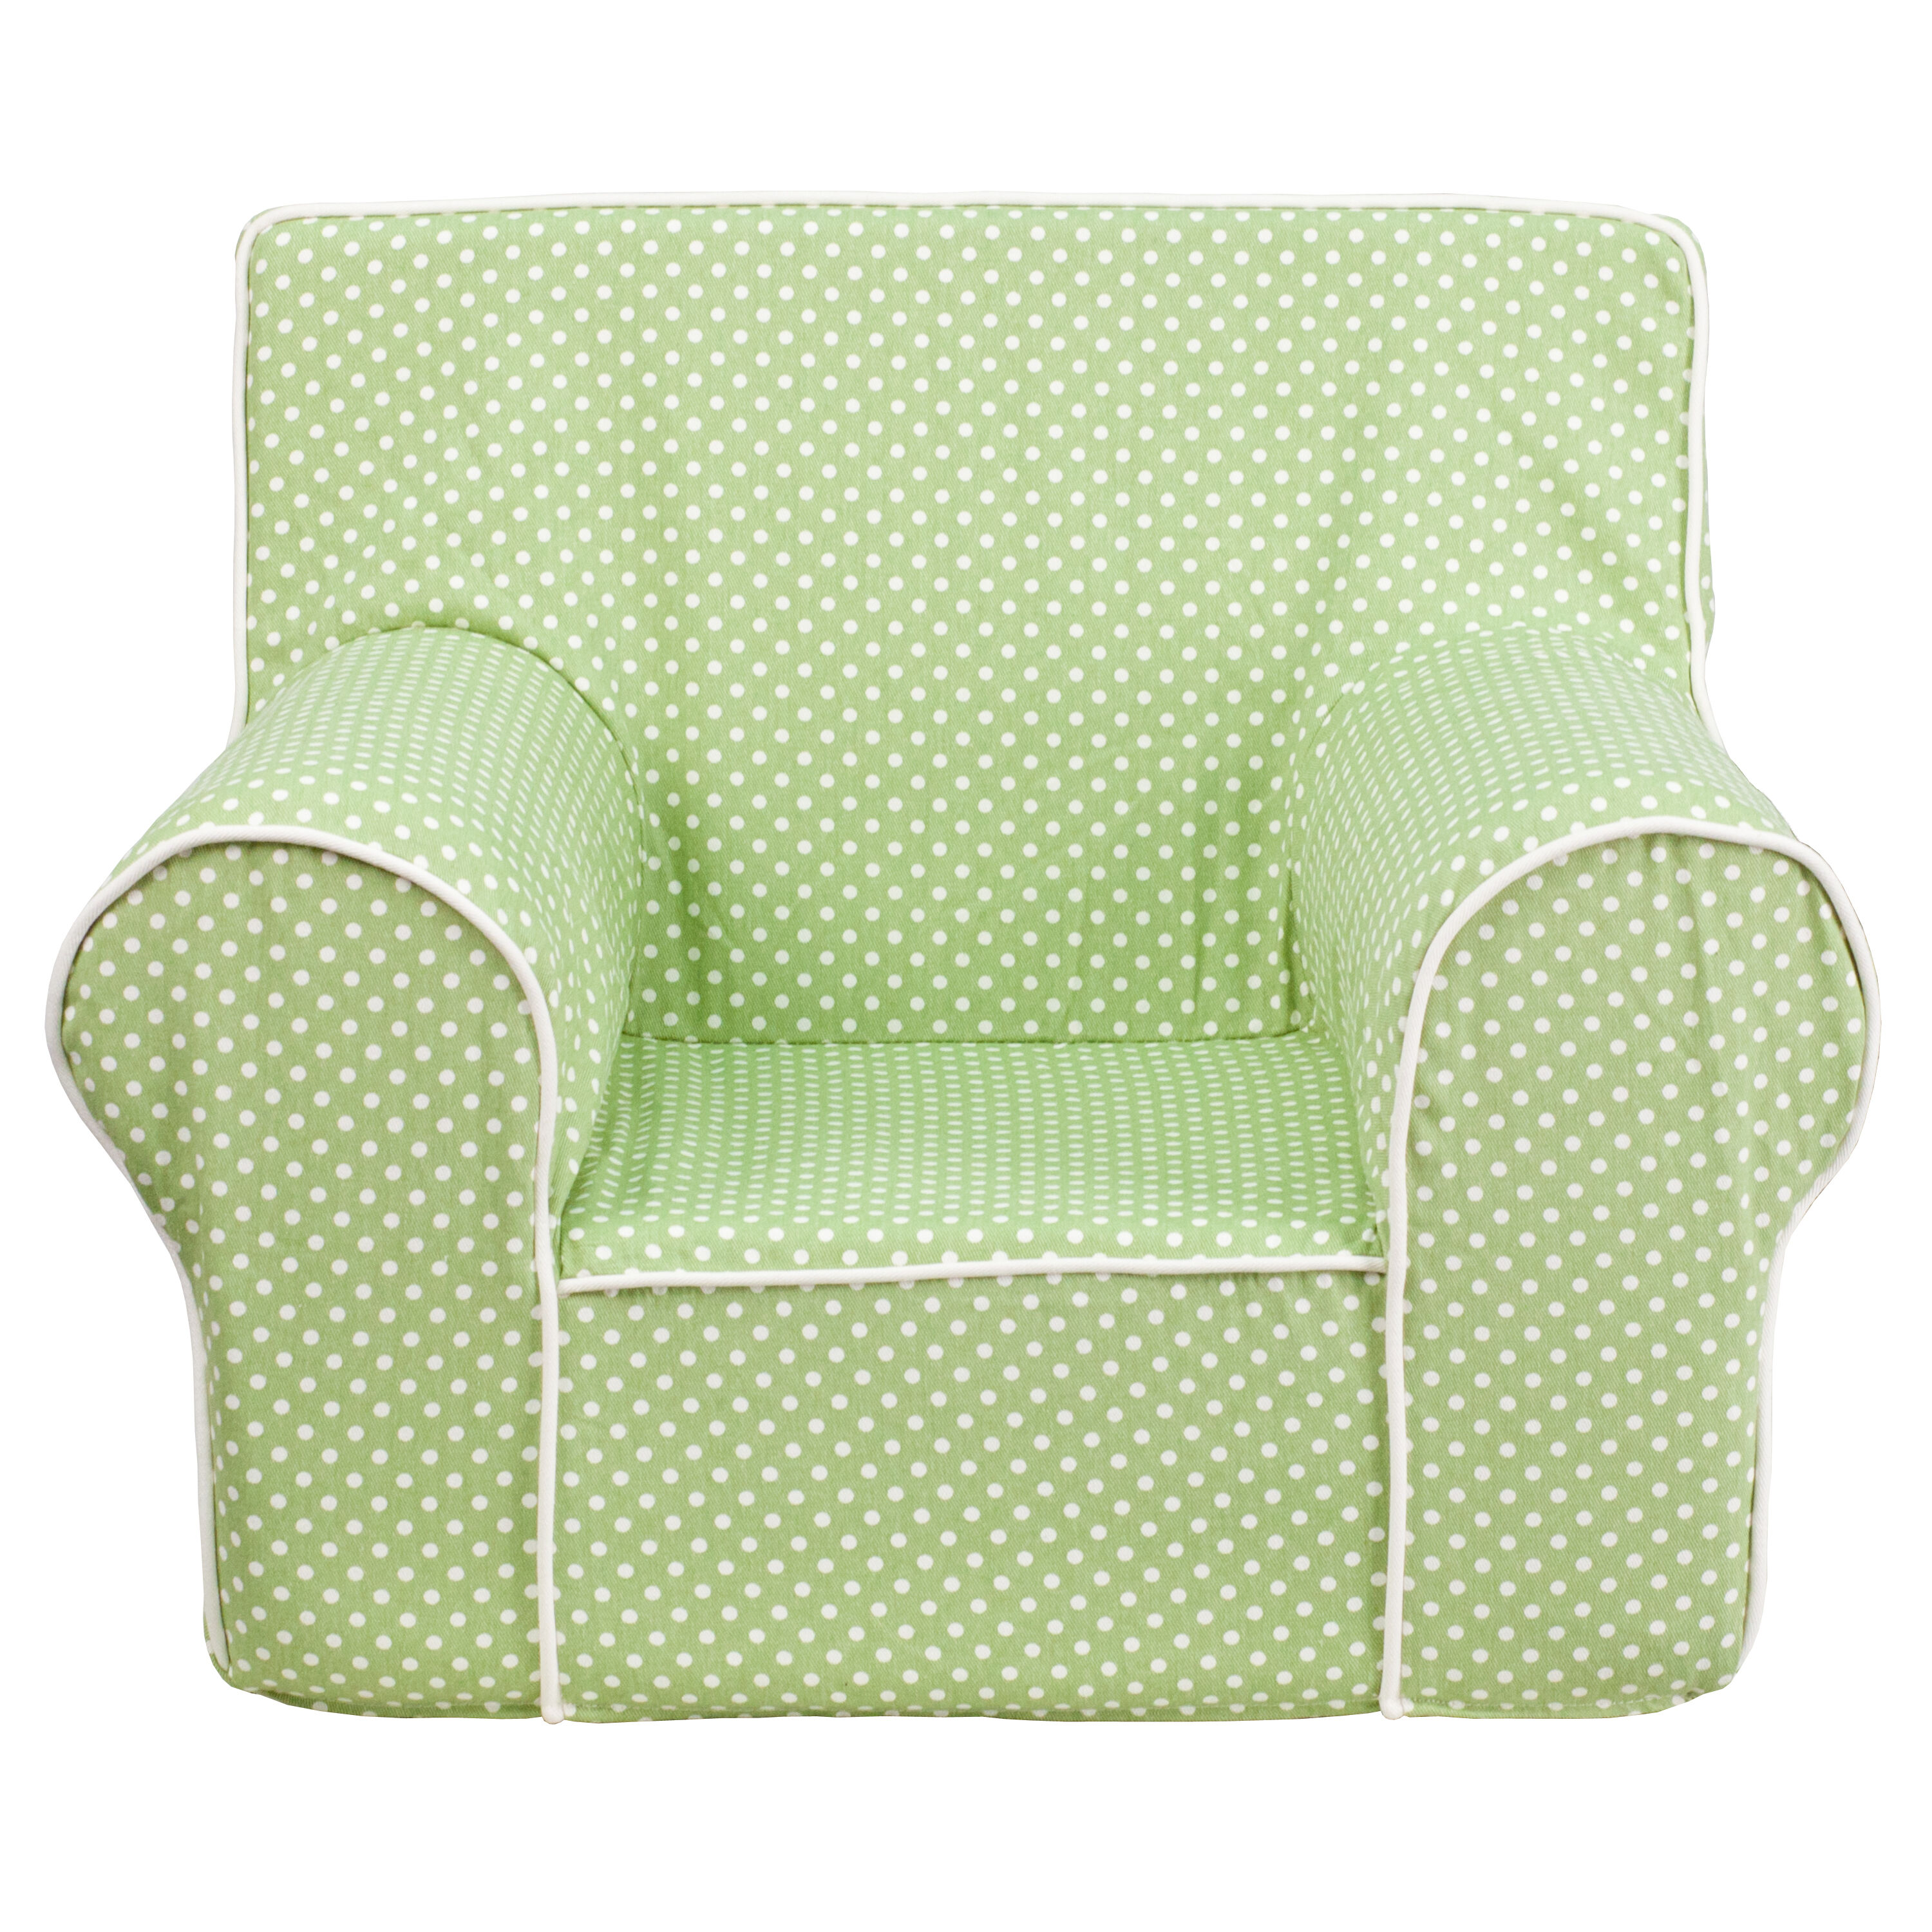 Our Small Green Dot Kids Chair With White Piping Is On Sale Now.